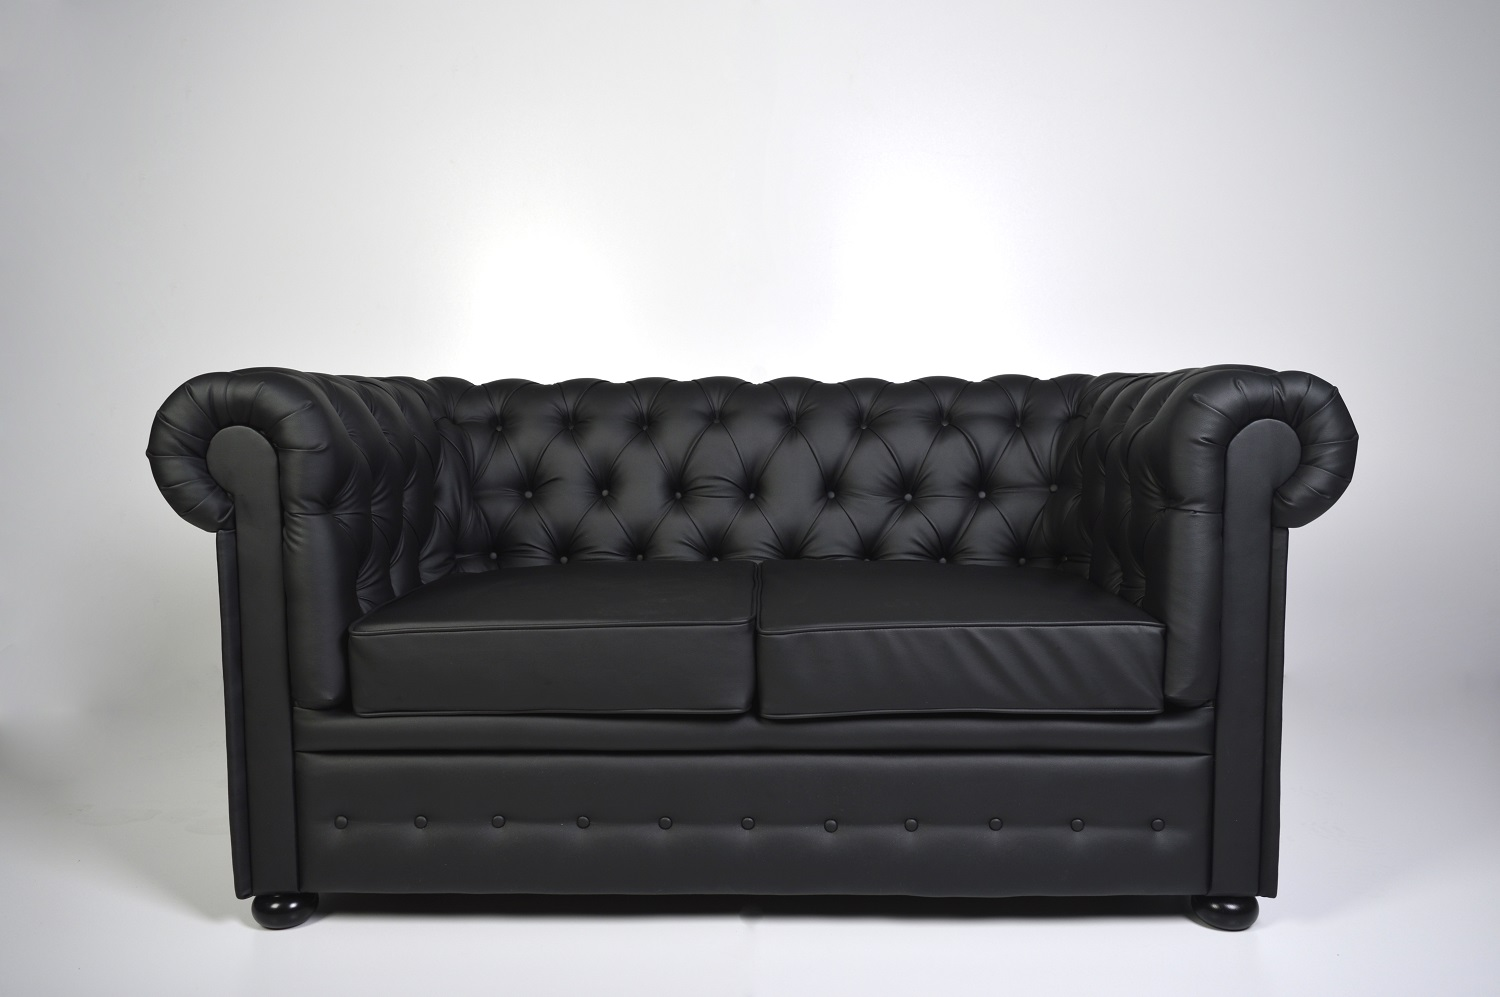 Sofa chesterfield concept 2